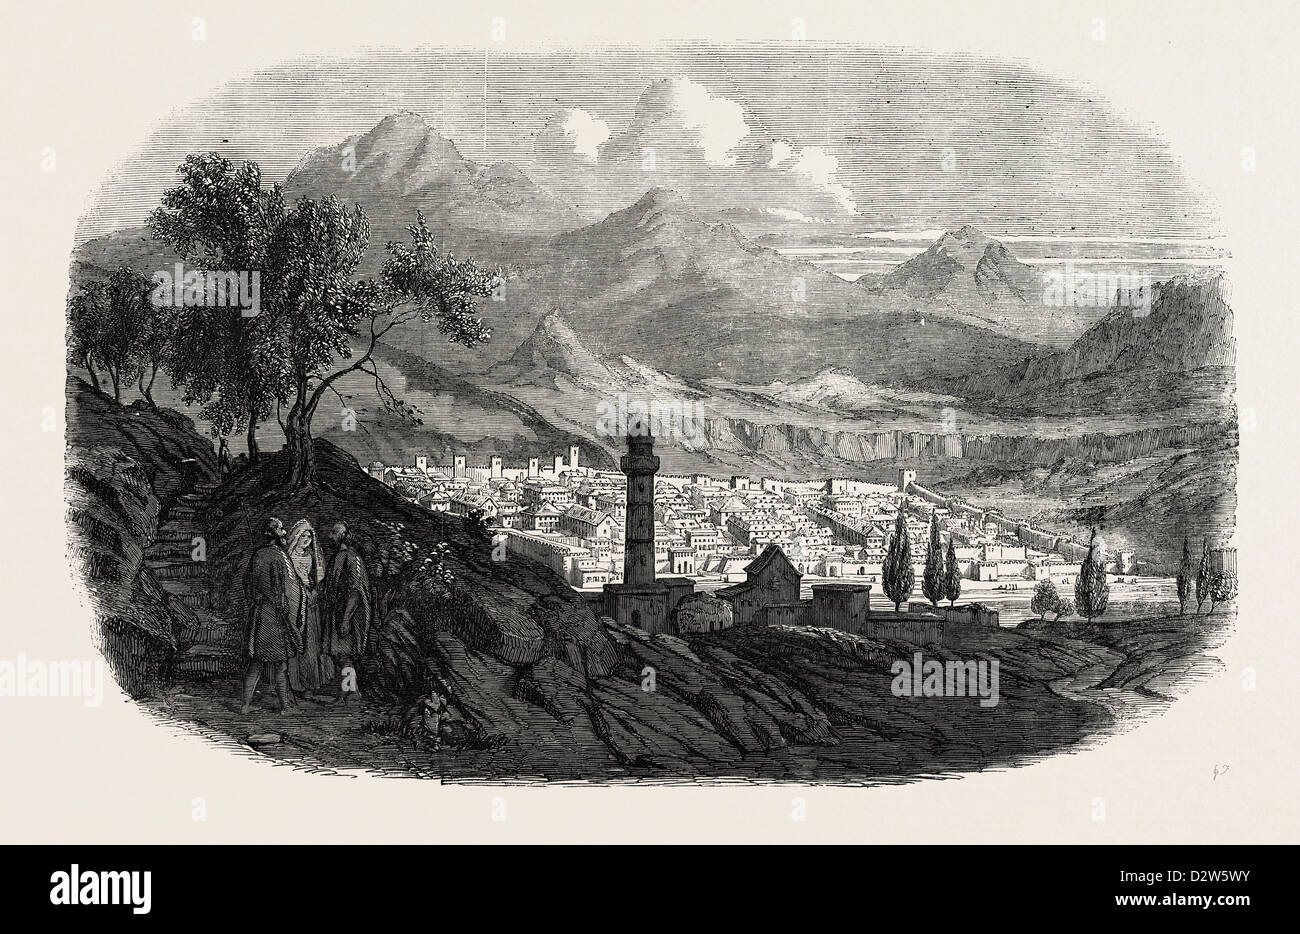 THE CITY OF KARS IN ASIATIC TURKEY 1854 - Stock Image